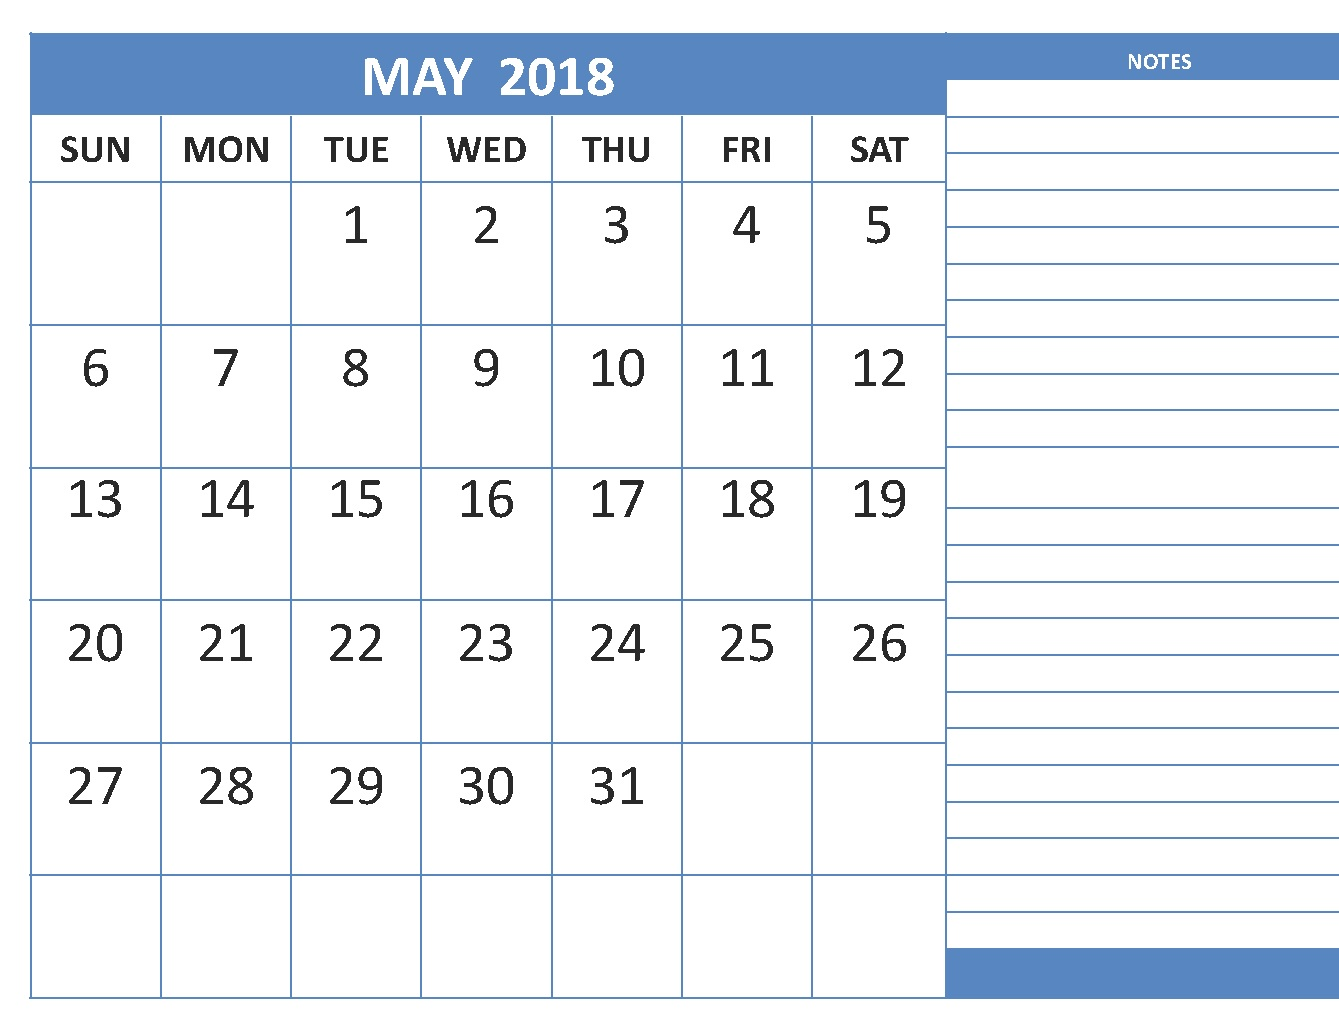 May 2018 Calendar Excel Notes